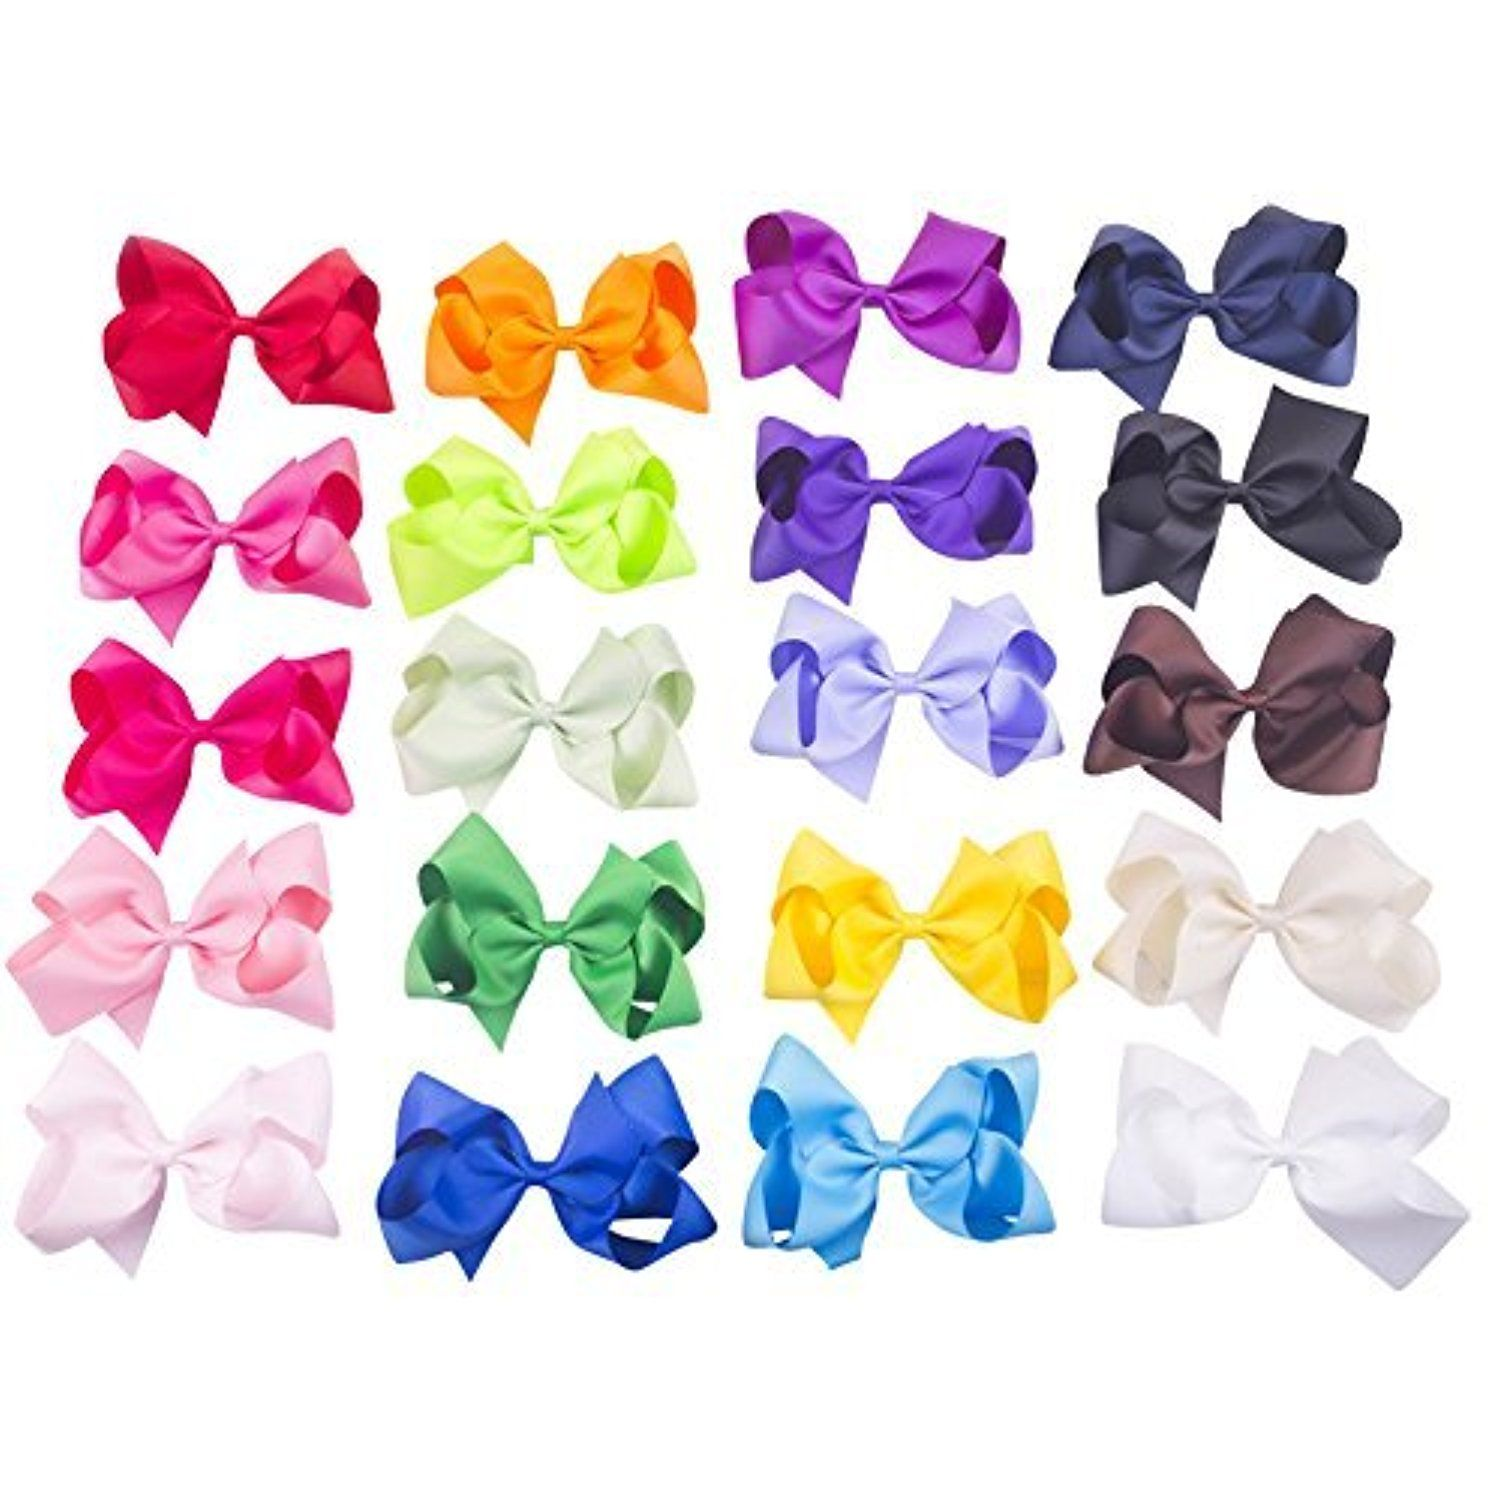 Bzybel boutique large big huge hair bow clips grosgrain ribbon